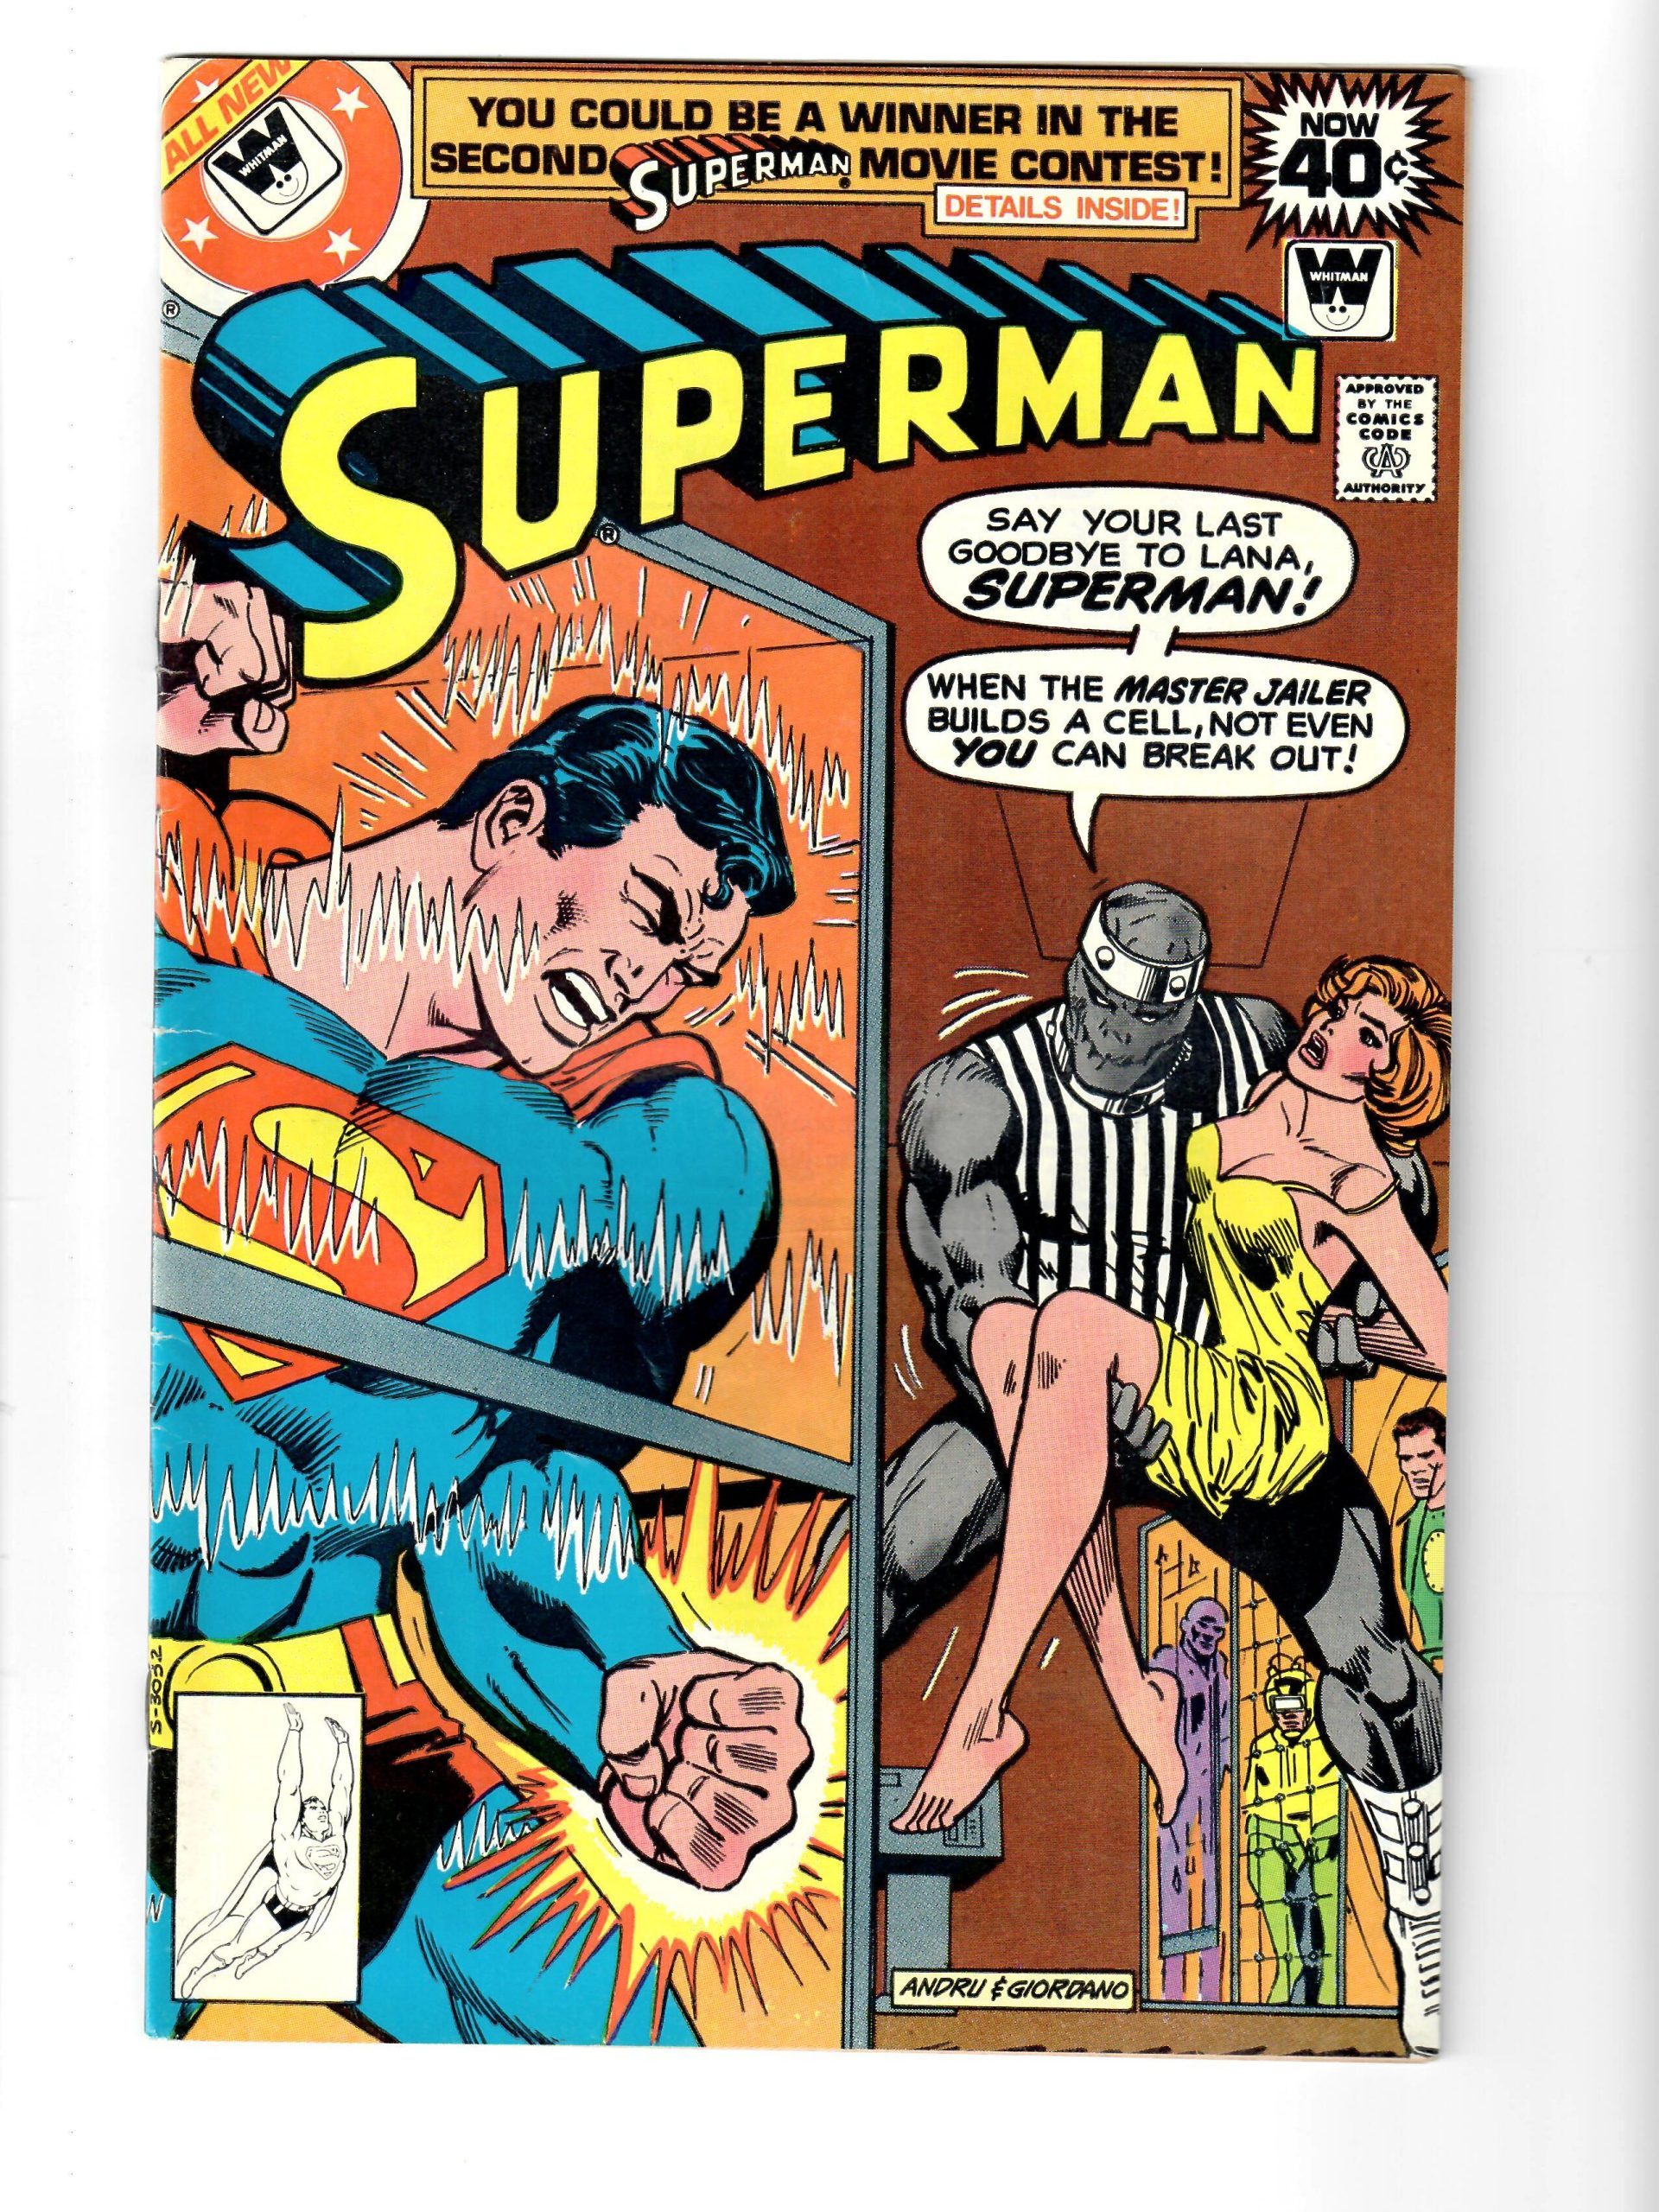 DC COMICS SUPERMAN #331 JAN 1979 COMIC #159078-7